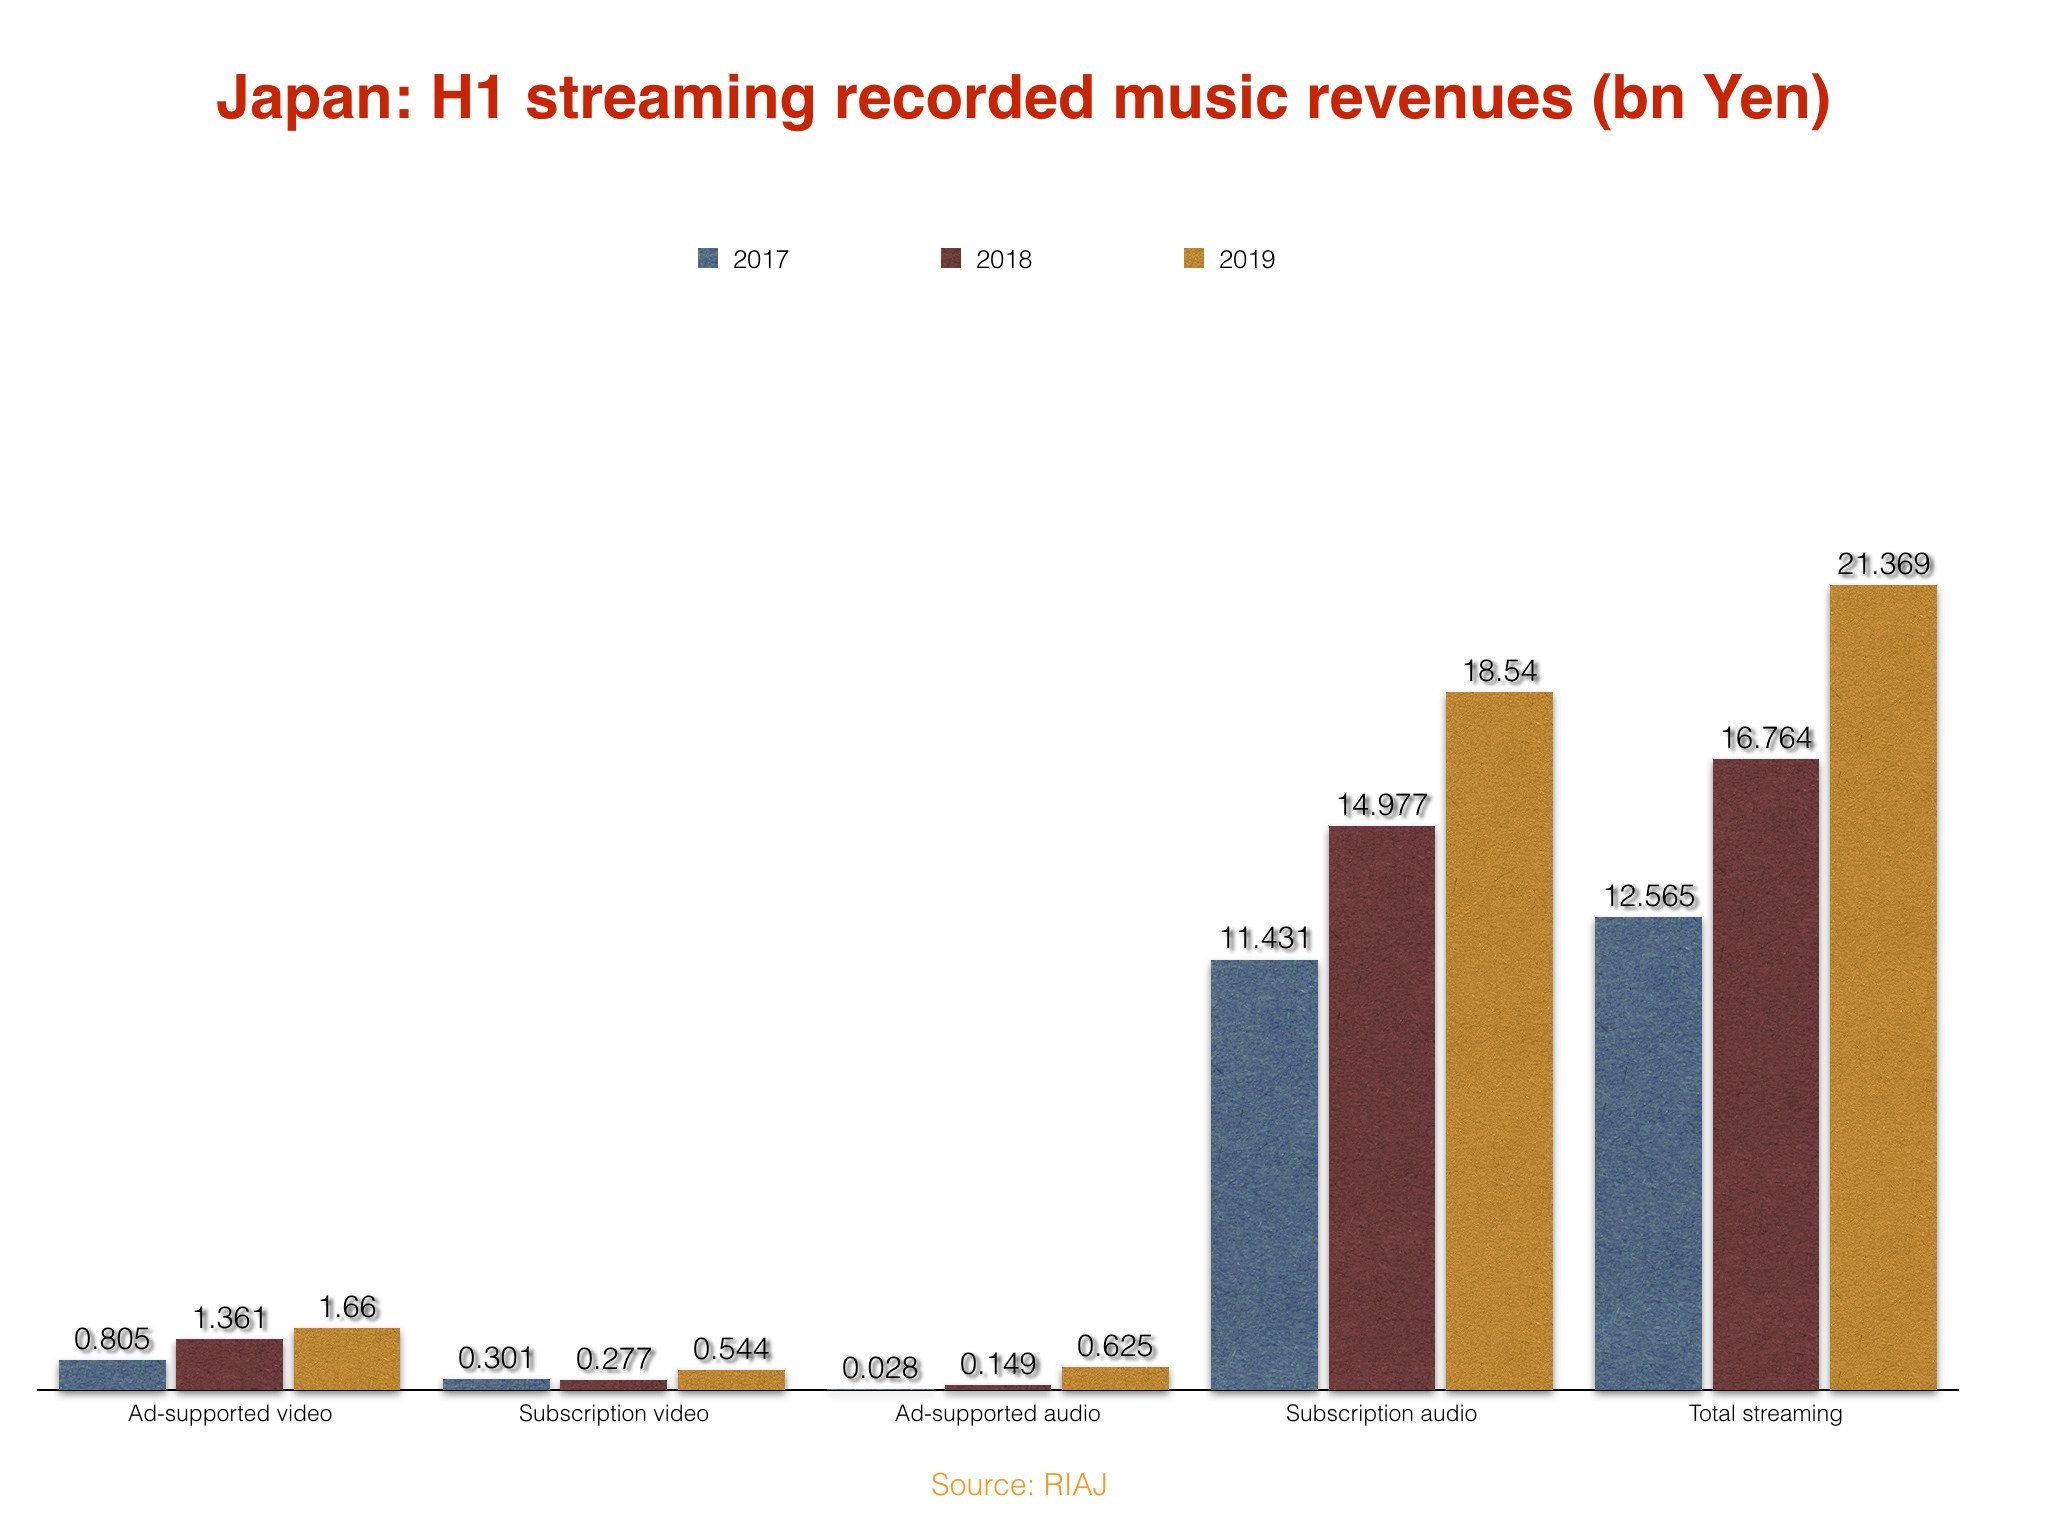 Industry revenues in Japan, world's second biggest recorded